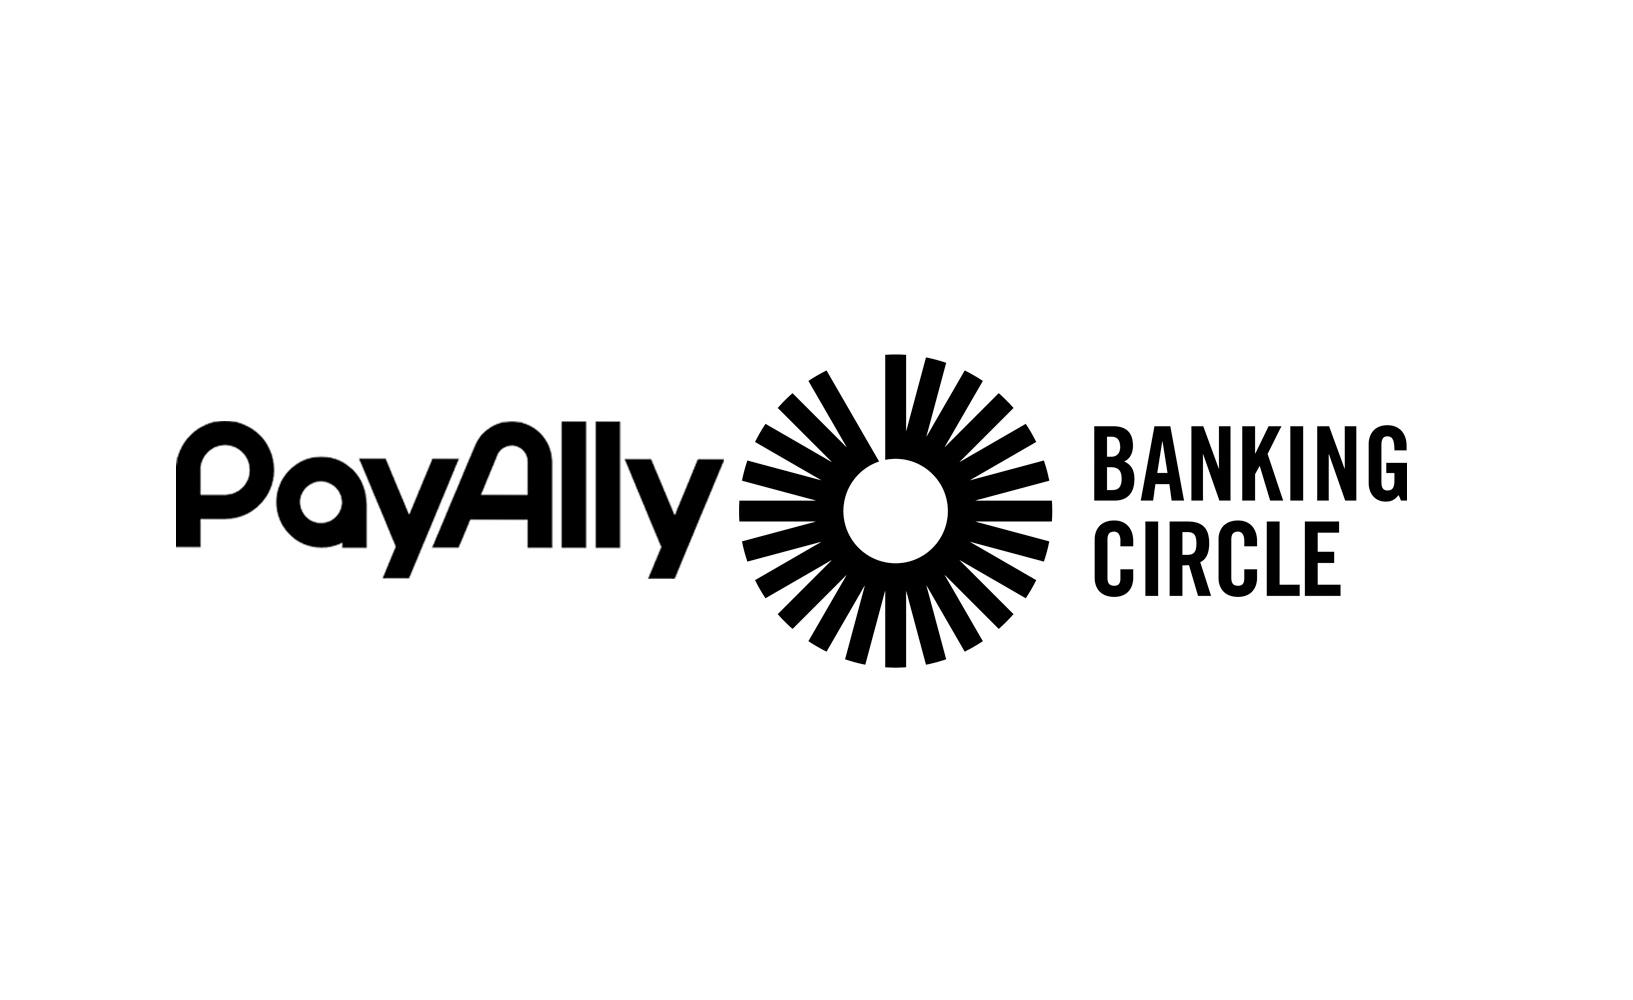 PayAlly Strengthens International Payments Offering Through New Partnership With Banking Circle